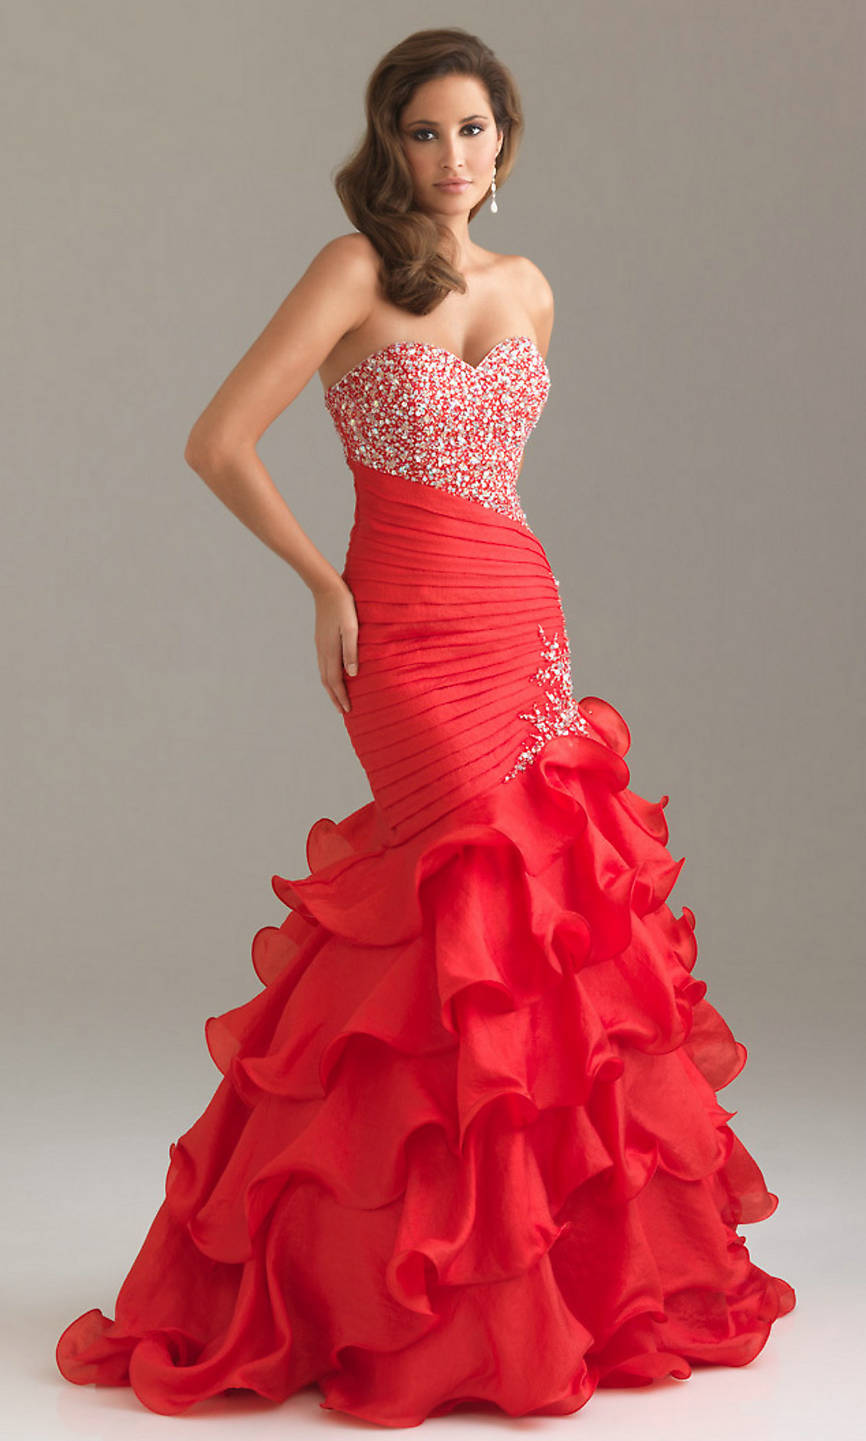 Gorgeous Prom Dresses Style to Match Your Figure